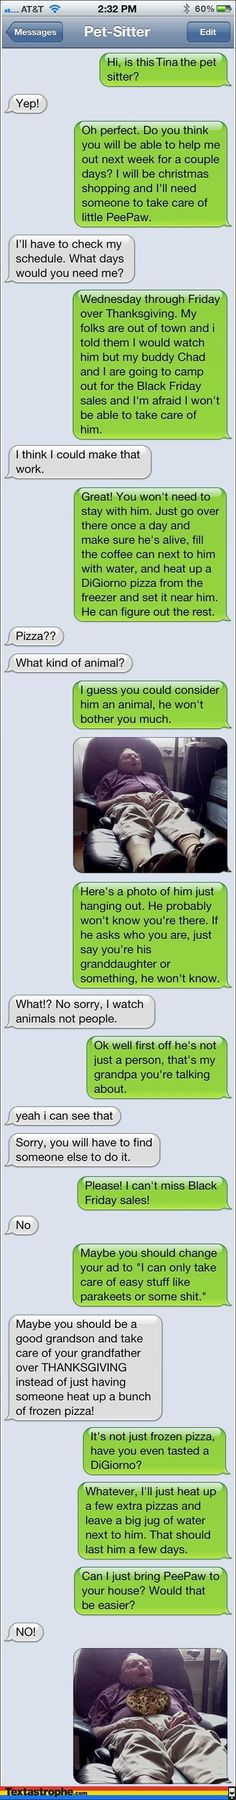 The Pet Sitter | Pranking People Through Text haha!! Y am I laughing at this?: